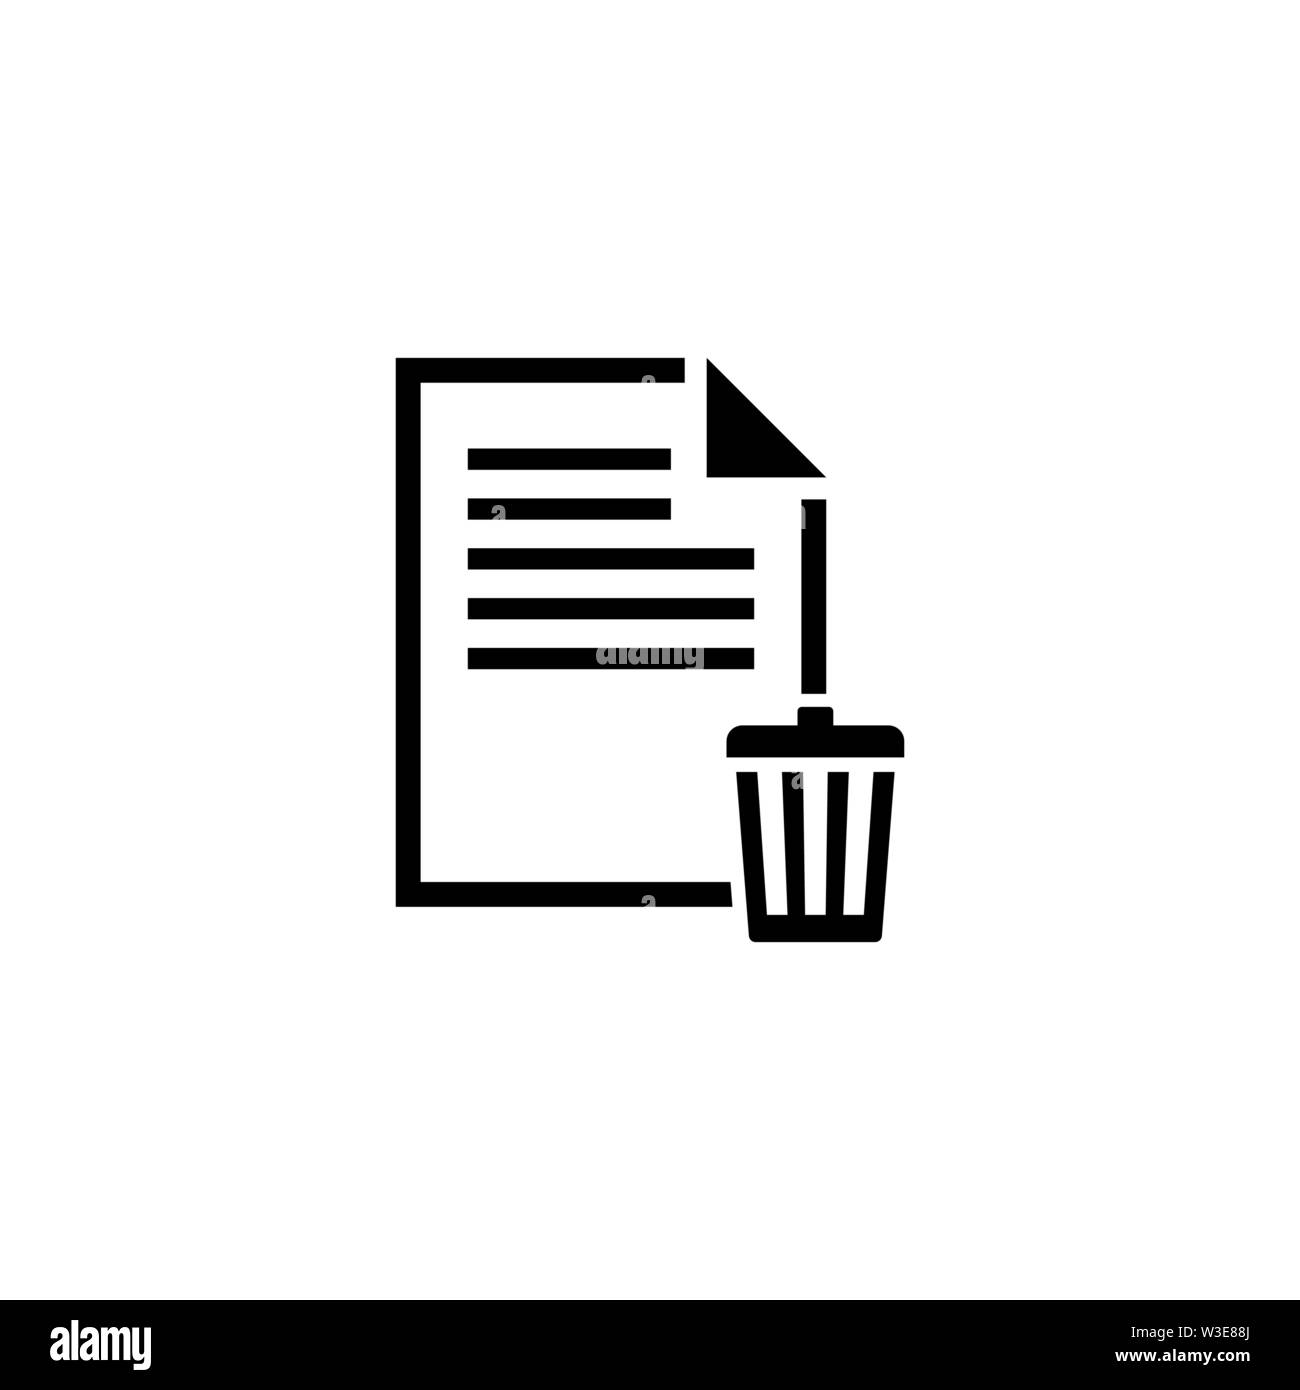 Delete File, Trash Paper Document Flat Vector Icon illustration. Simple black symbol on white background. Delete File, Trash Paper Document sign desig - Stock Image